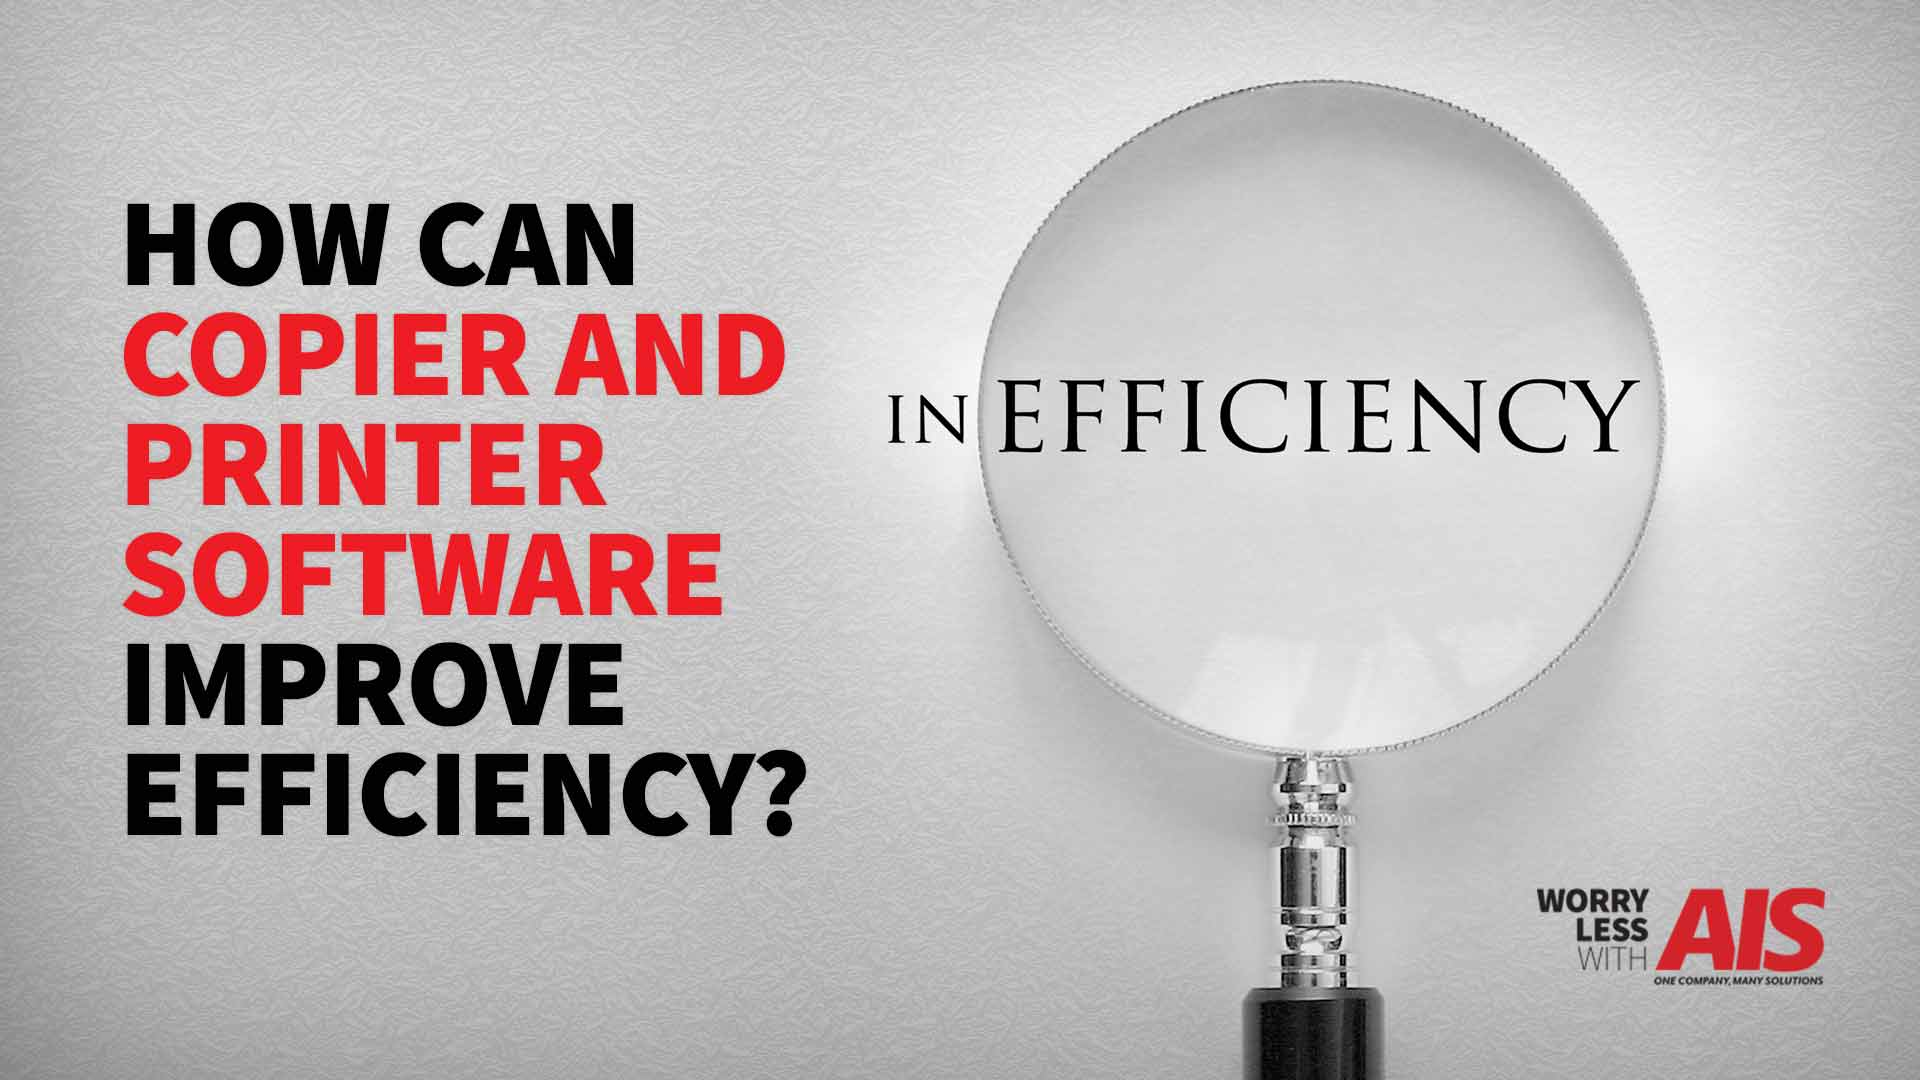 How Can Copier and Printer Software Improve Efficiency?